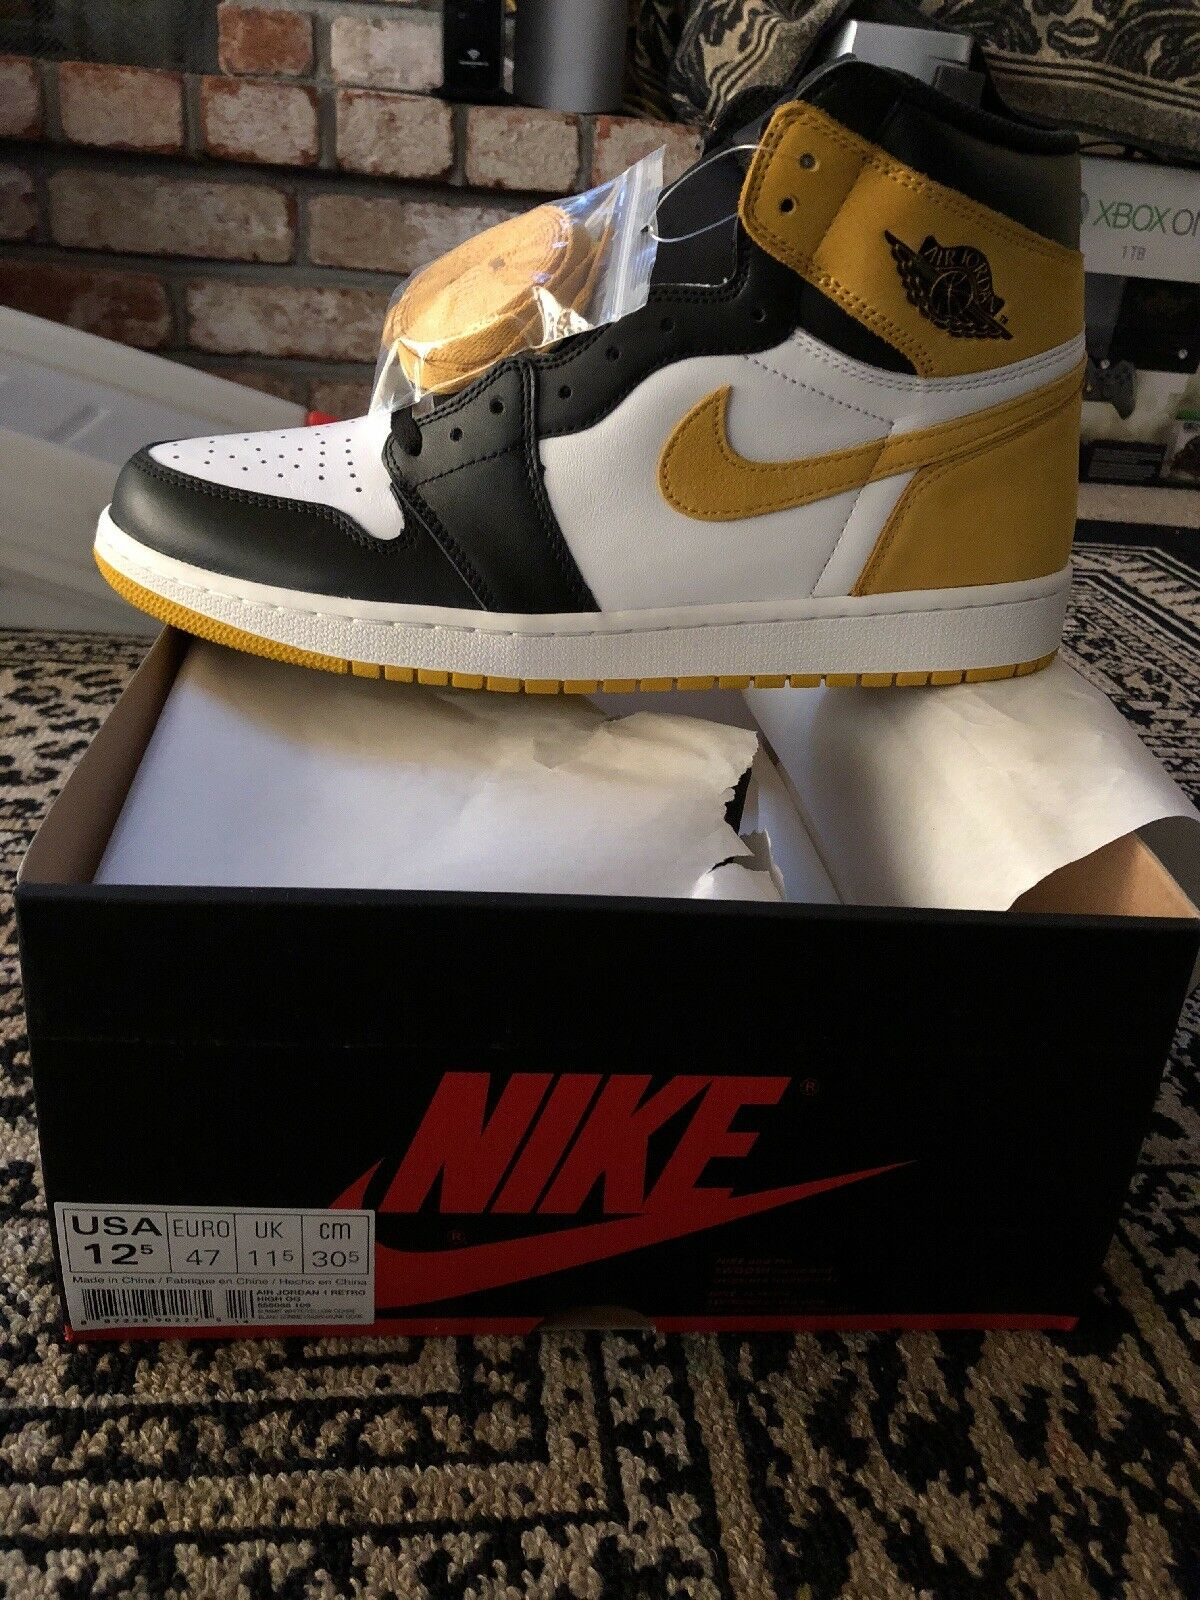 Rare Air Jordan 1 Yellow Ochre Best Hand In The Game Size 12.5